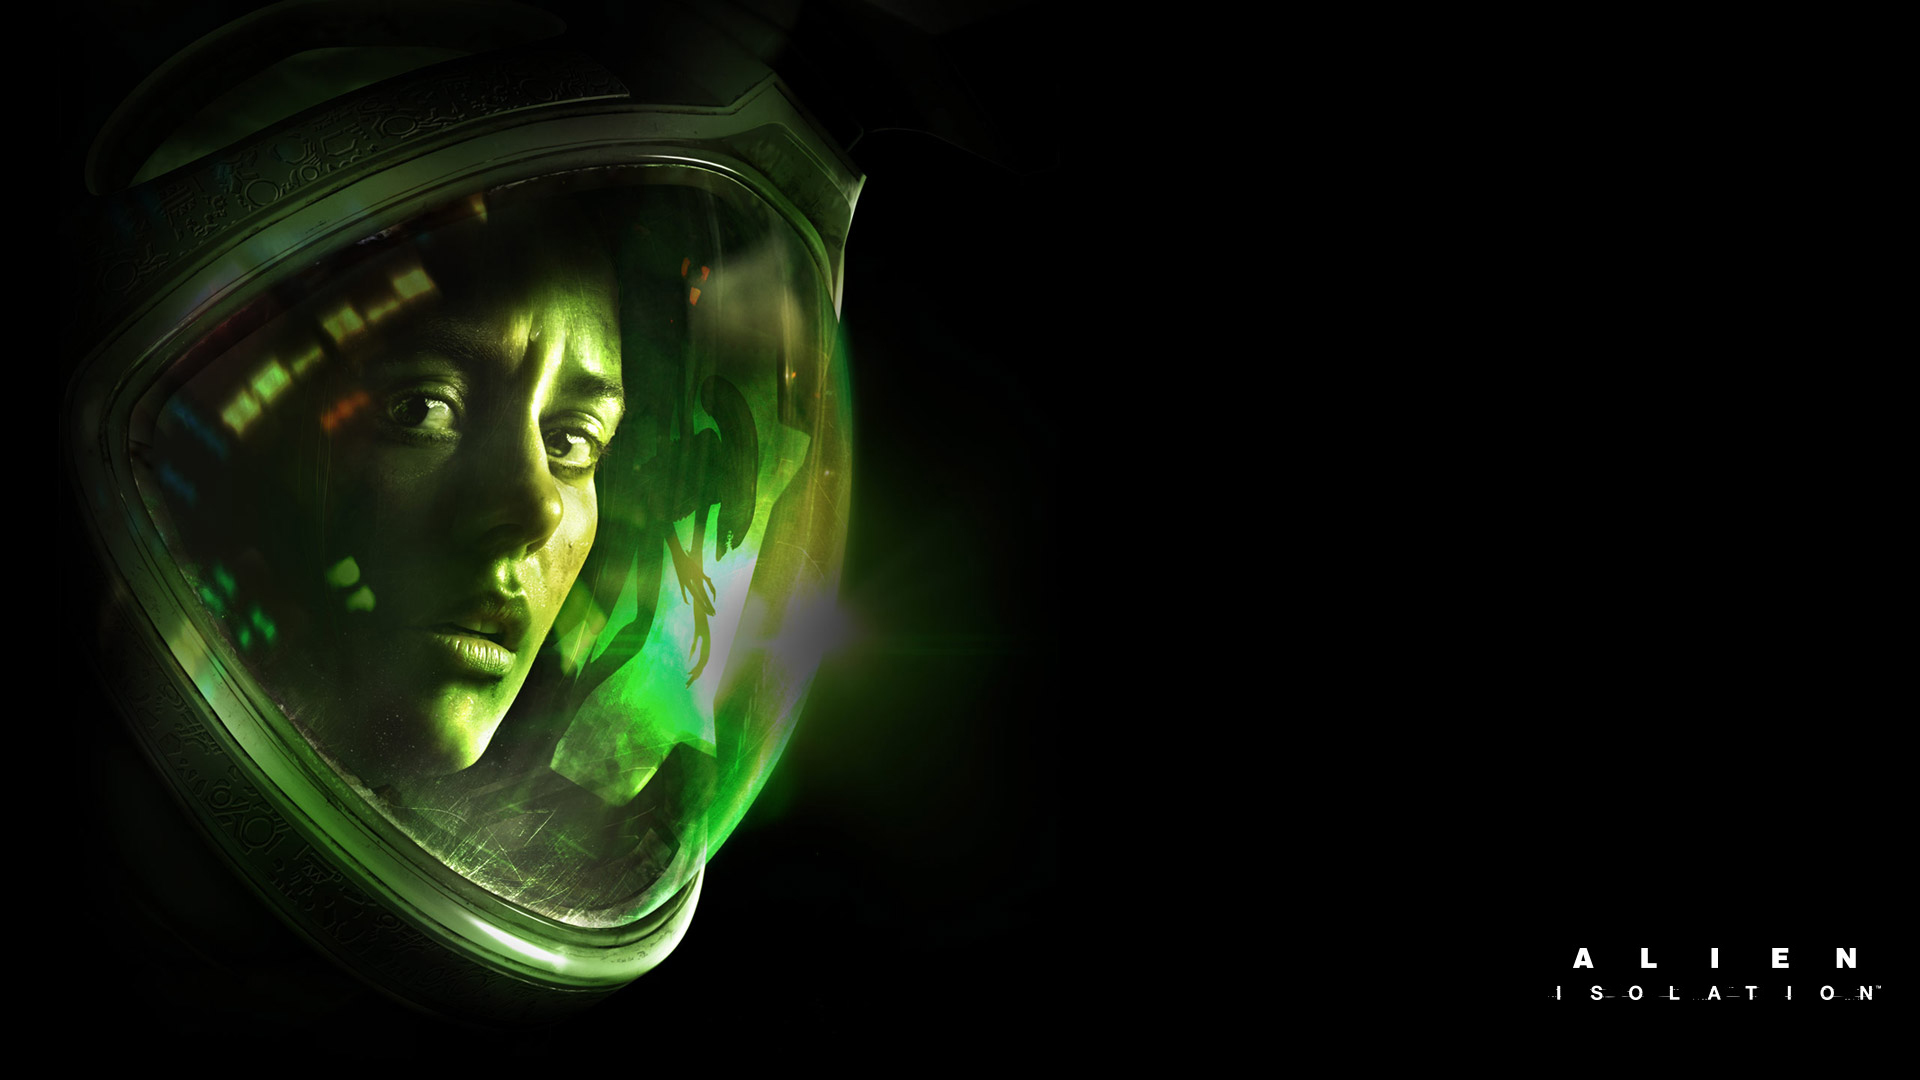 alien-isolation-wallpaper